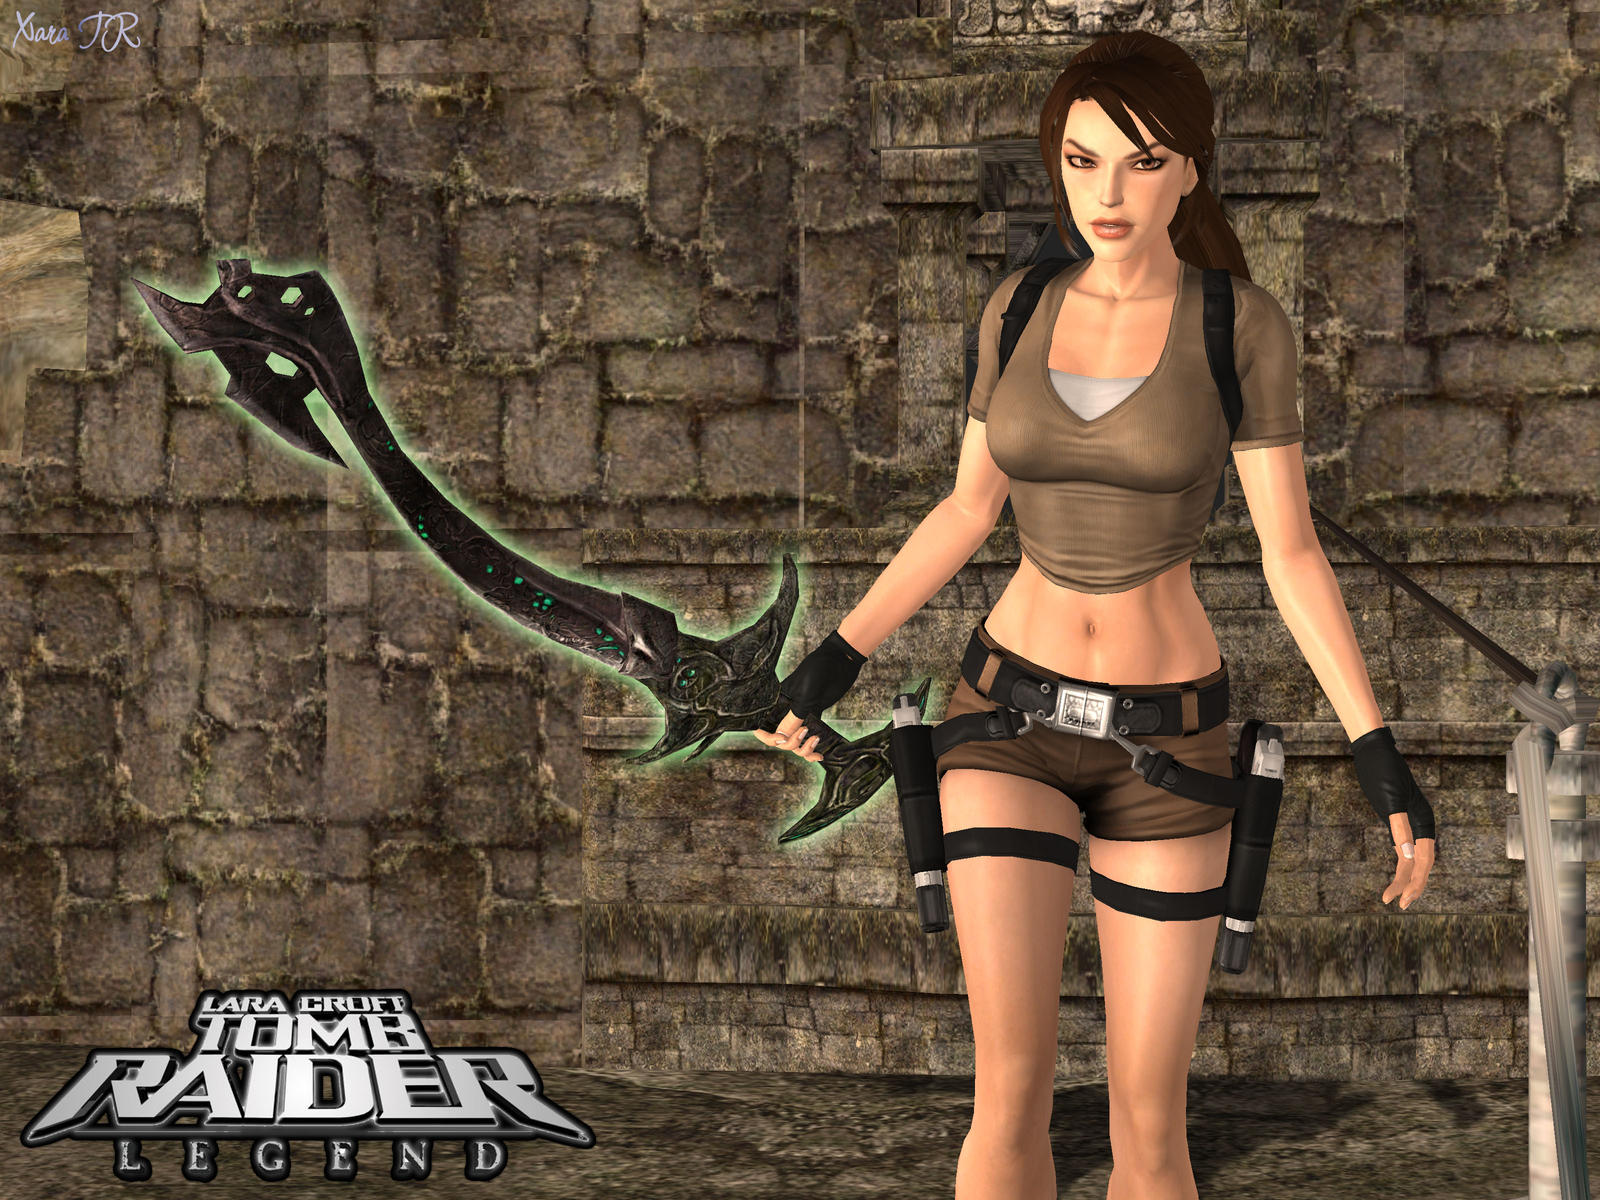 Tomb raider legend porn xbox xxx tube